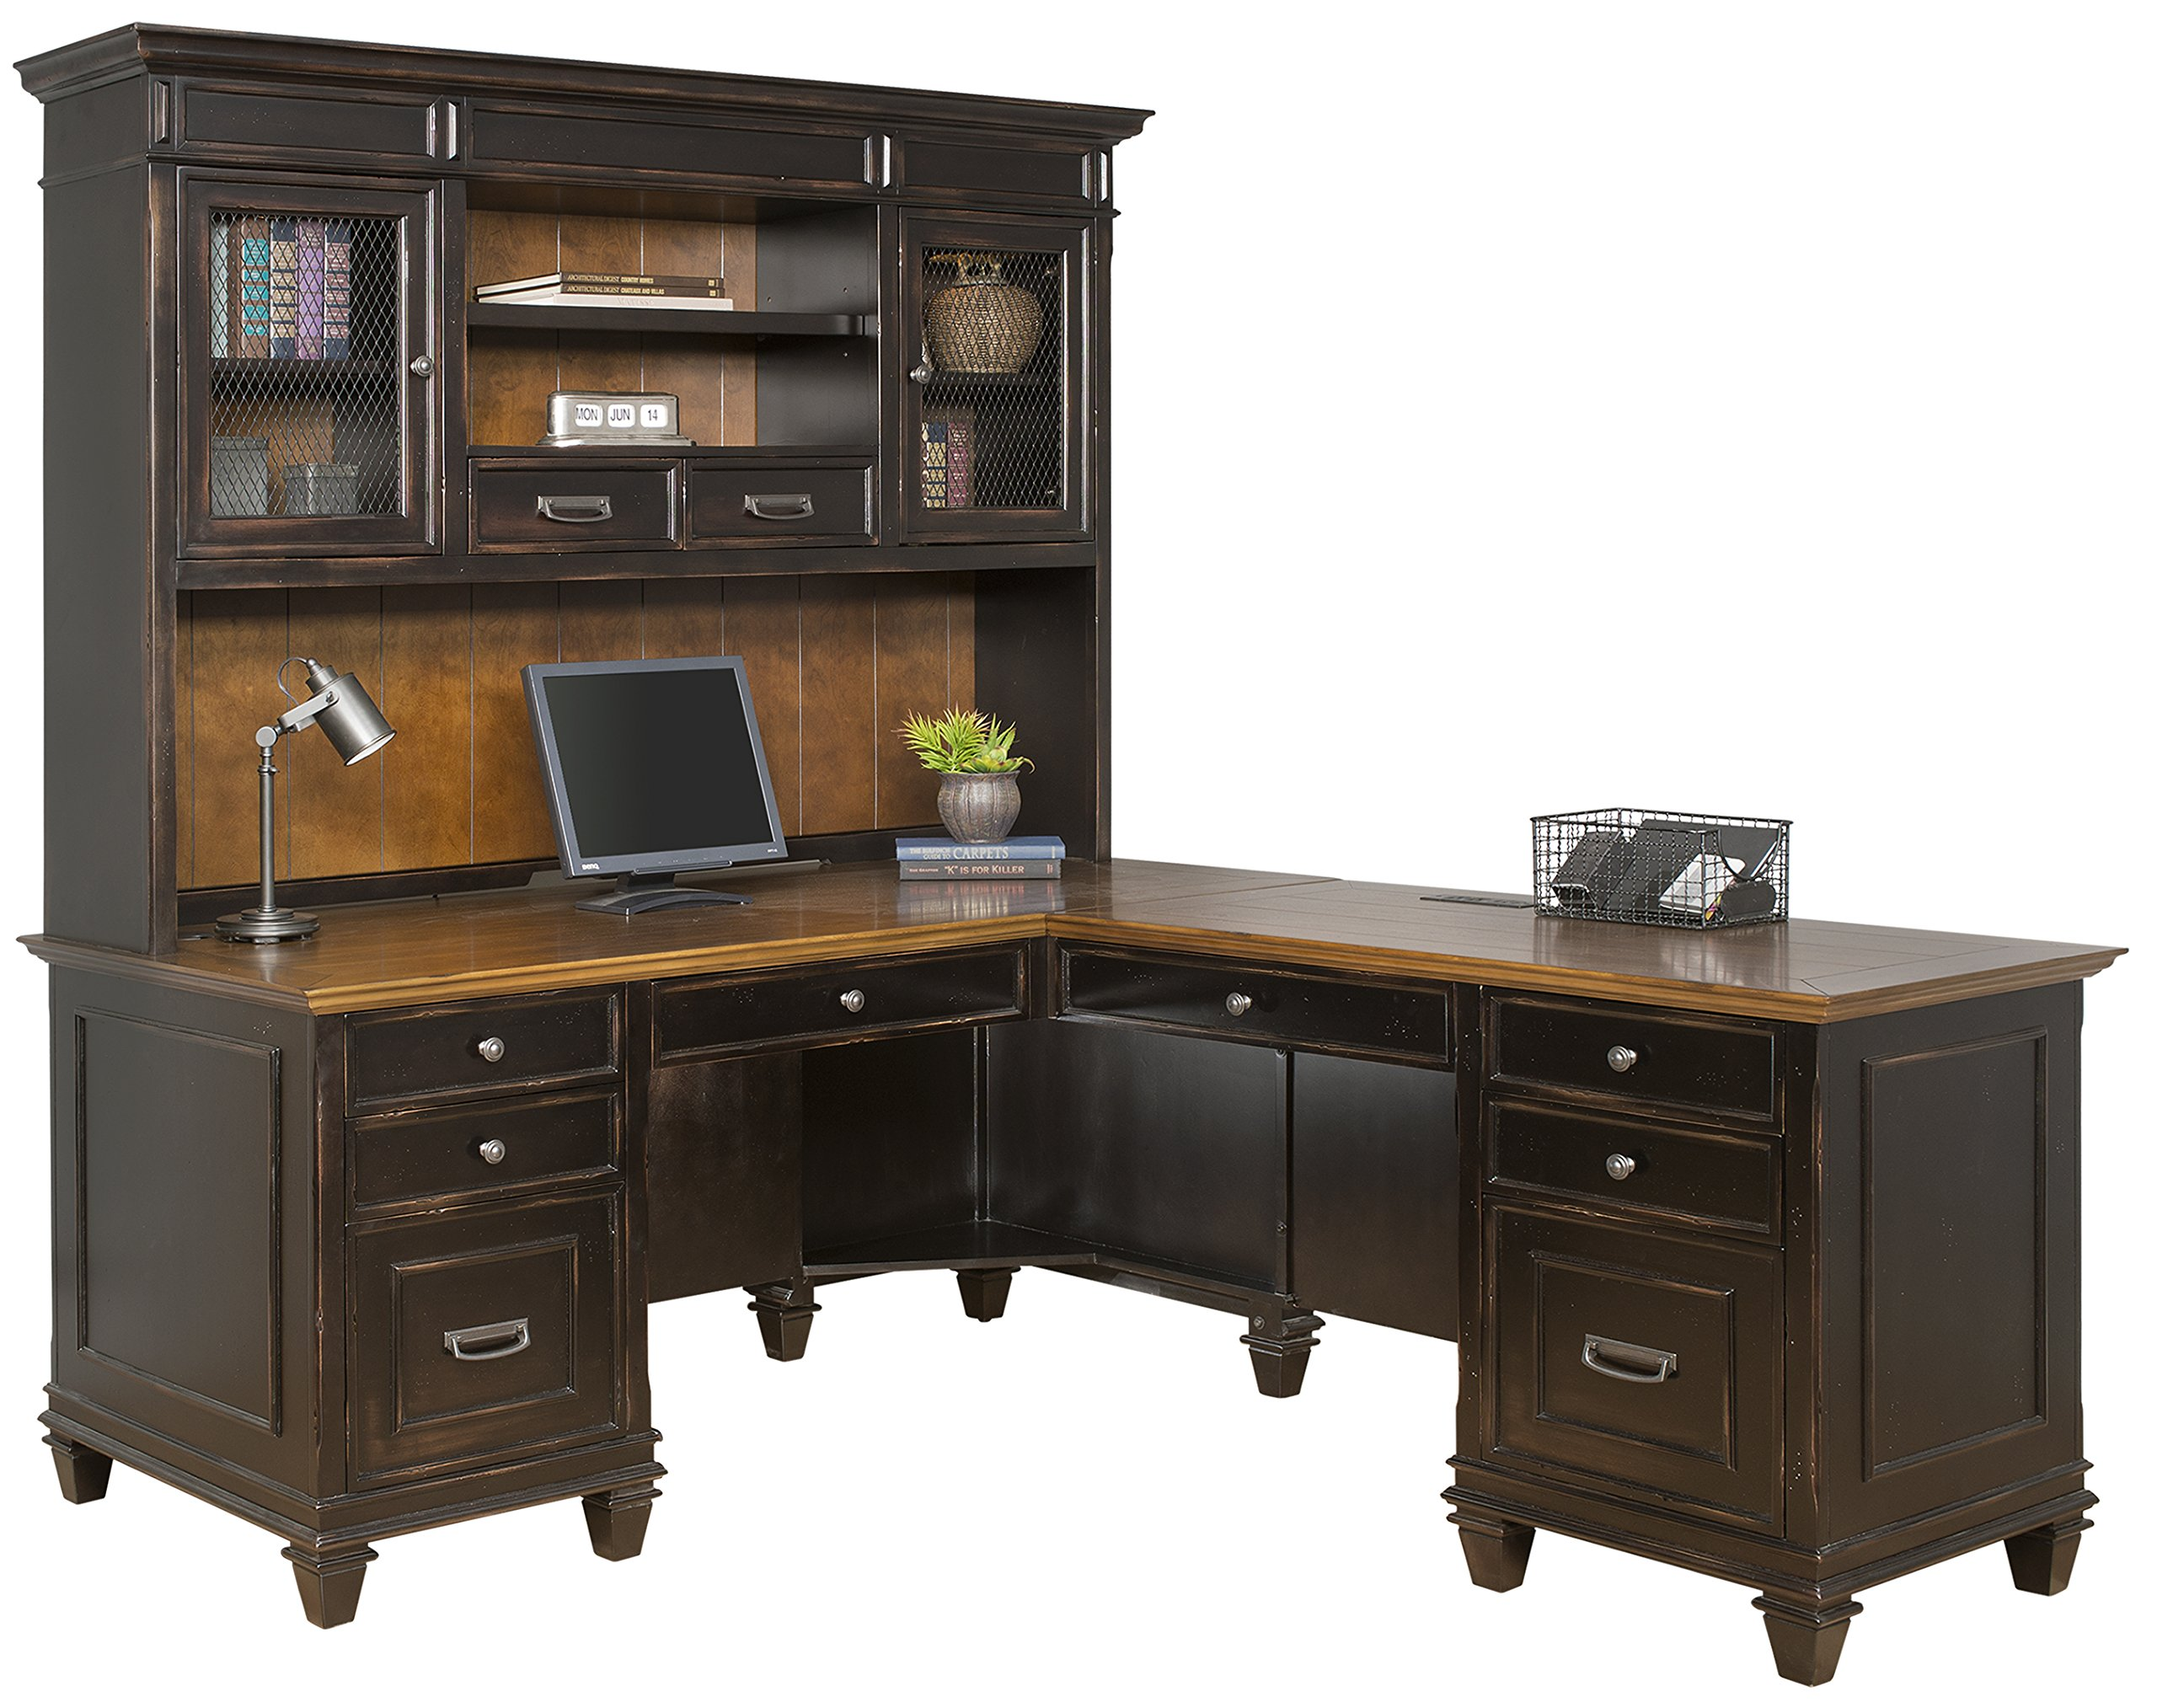 Martin Furniture Hartford Hutch, Brown - Fully Assembled by Martin Furniture (Image #3)